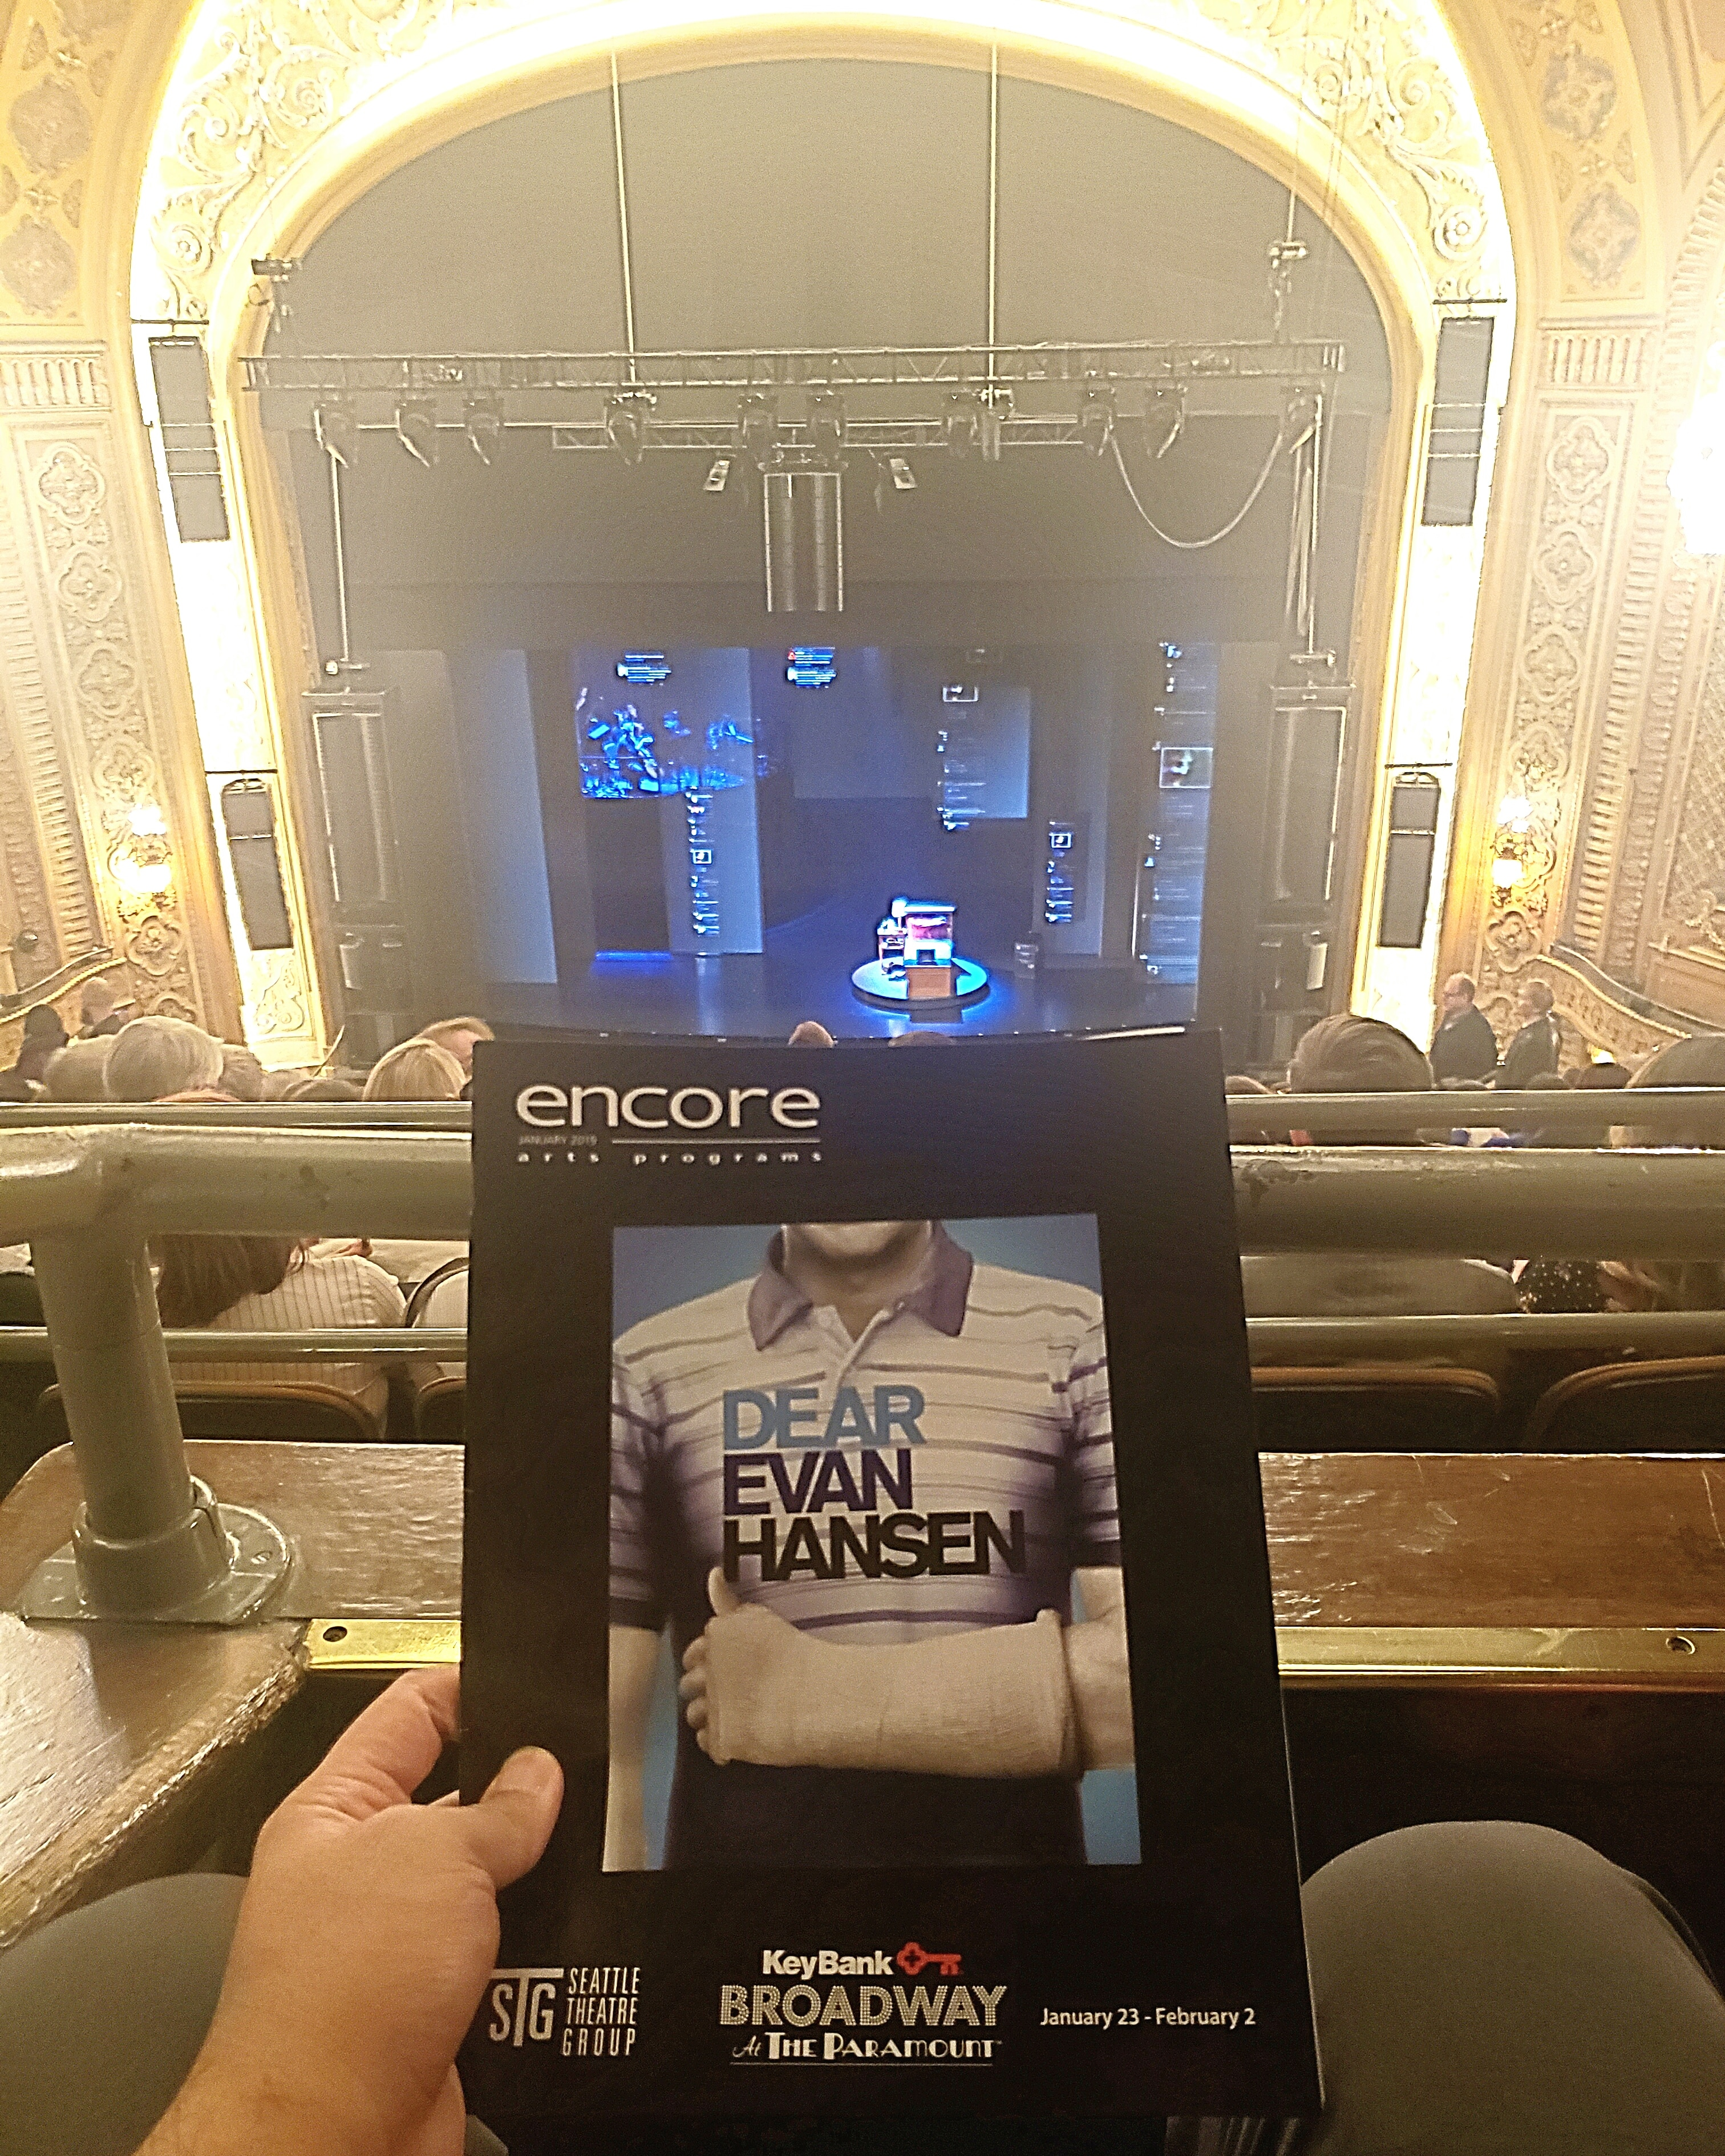 #Soldout run of the Tony Awards & Grammy Awards-winning #musical Dear Evan Hansen at Paramount Theatre. #Slow & didn't live up to the #hype. Not a fan of #highschool #teenager storylines. Amazing #projections & #lighting.